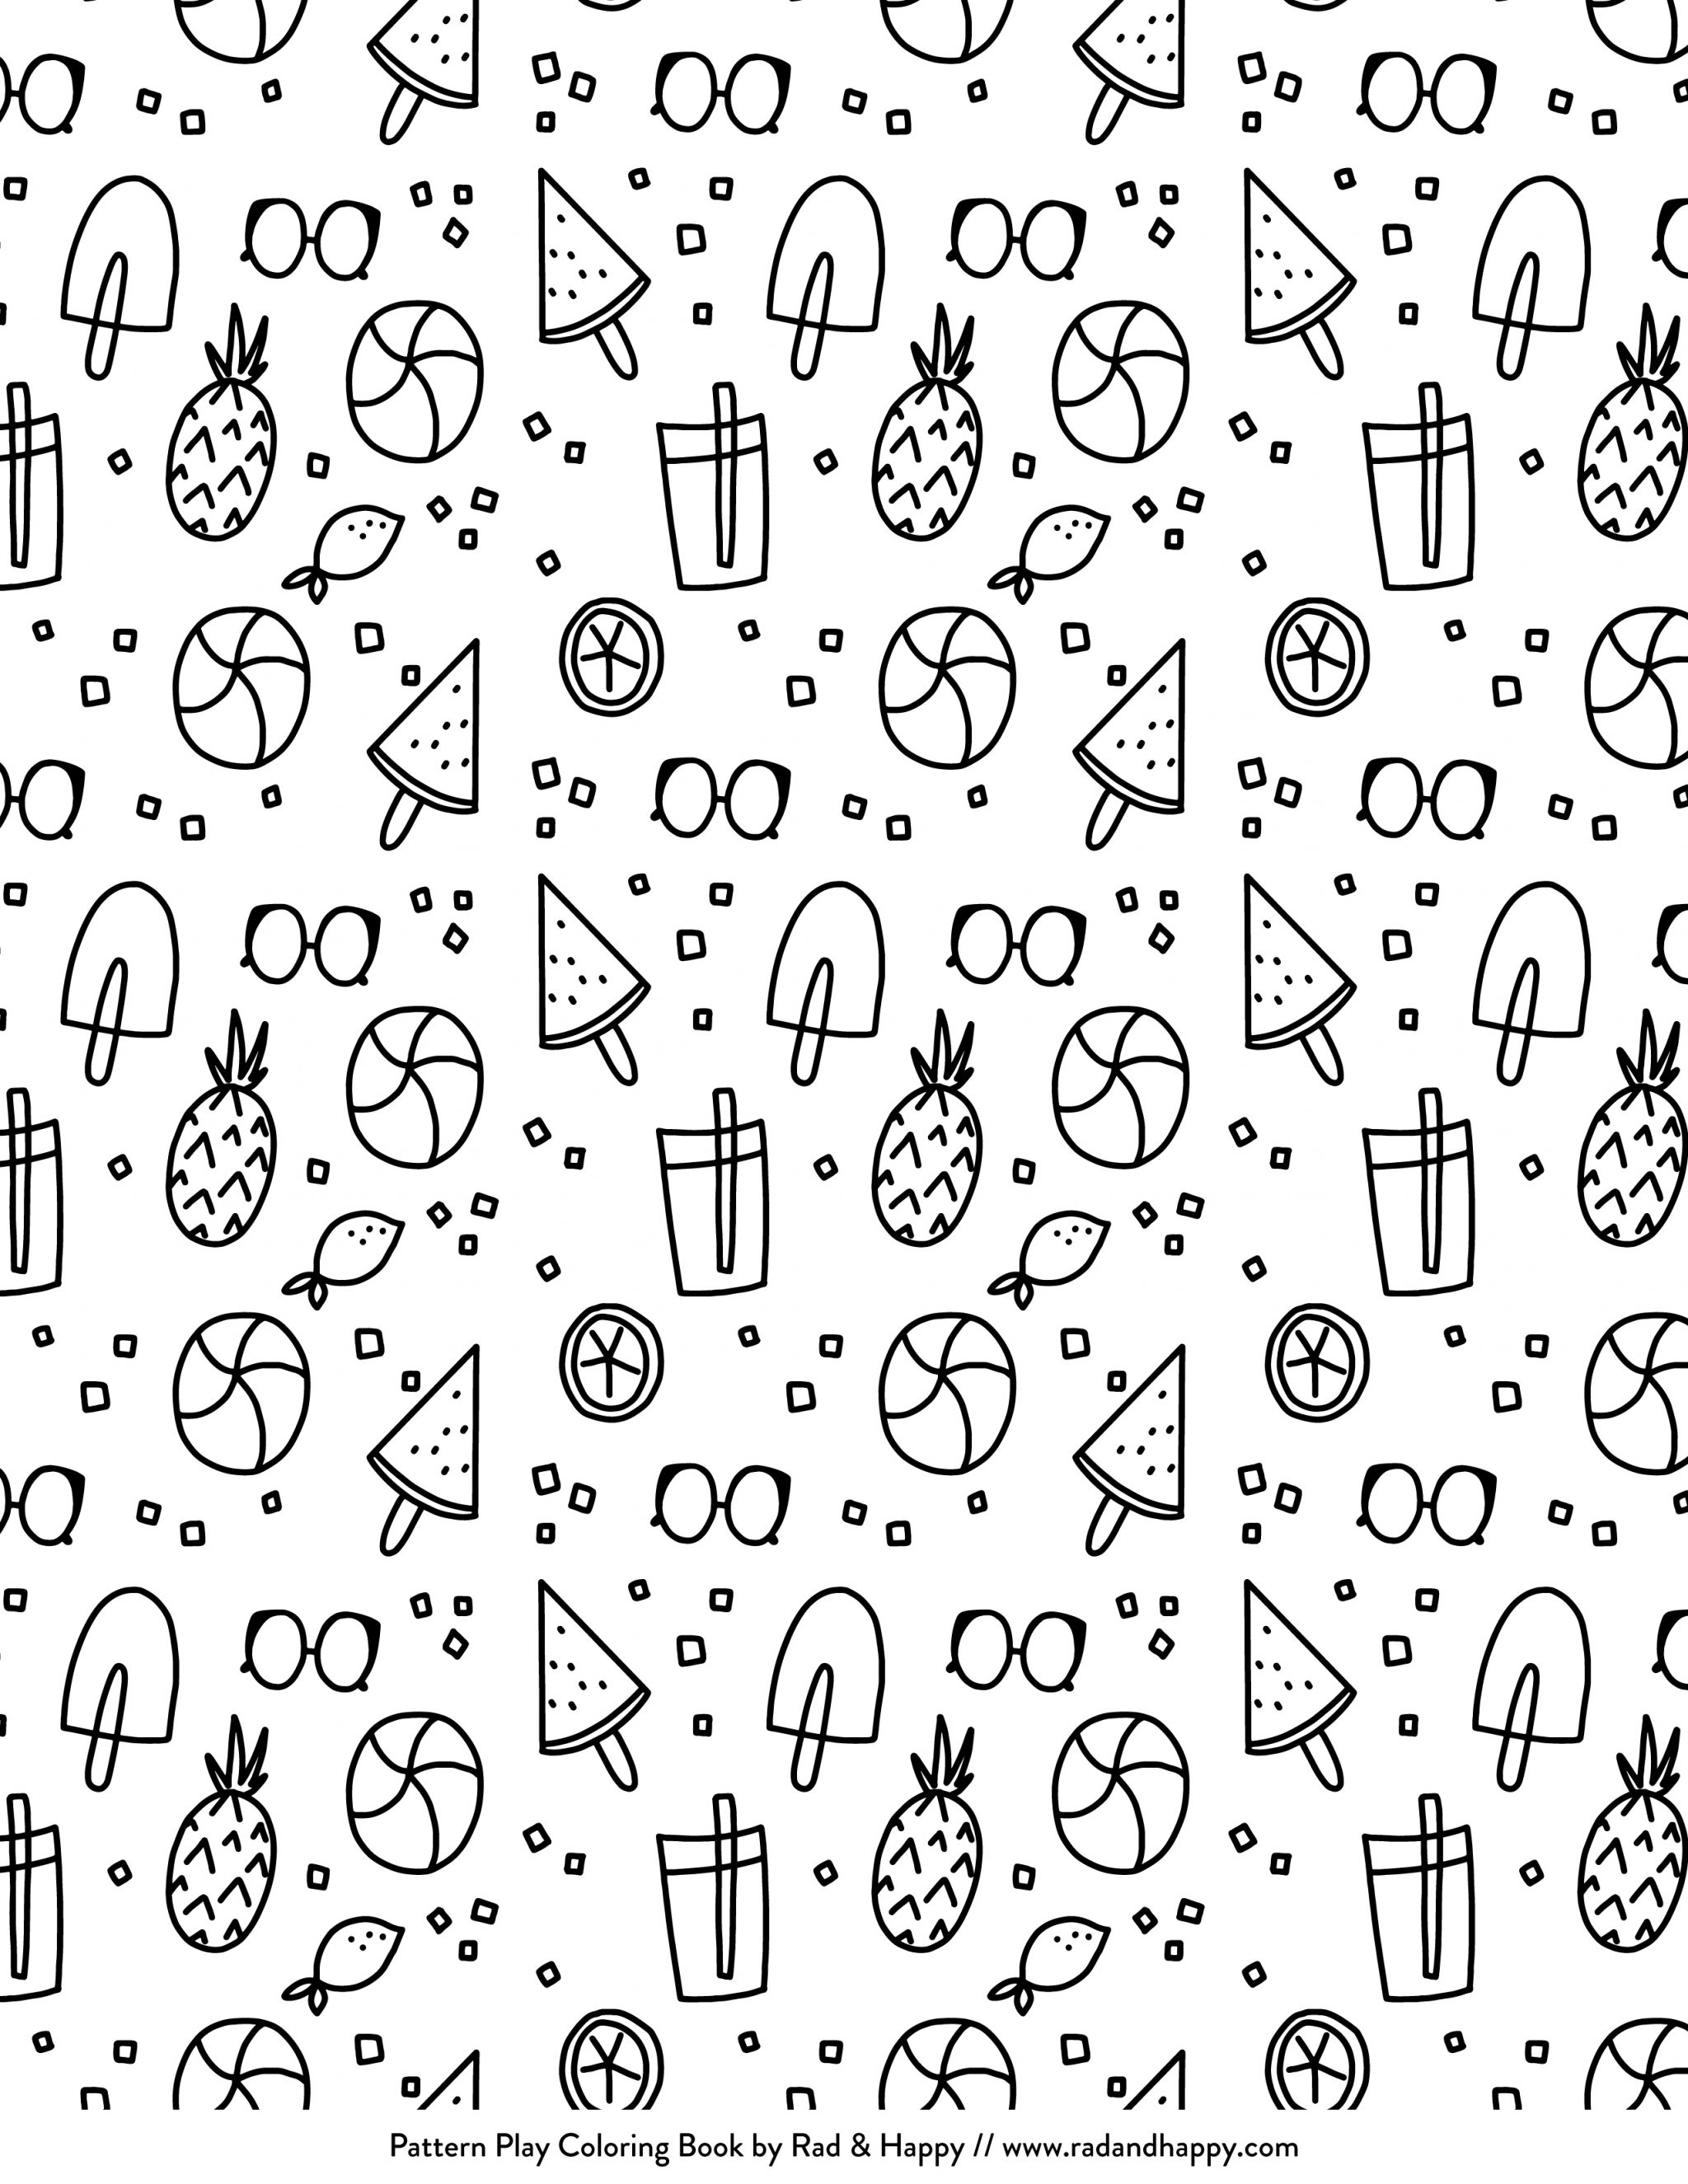 Sweet Treats Printable Coloring Pages | studiodiy.com - Studio DIY